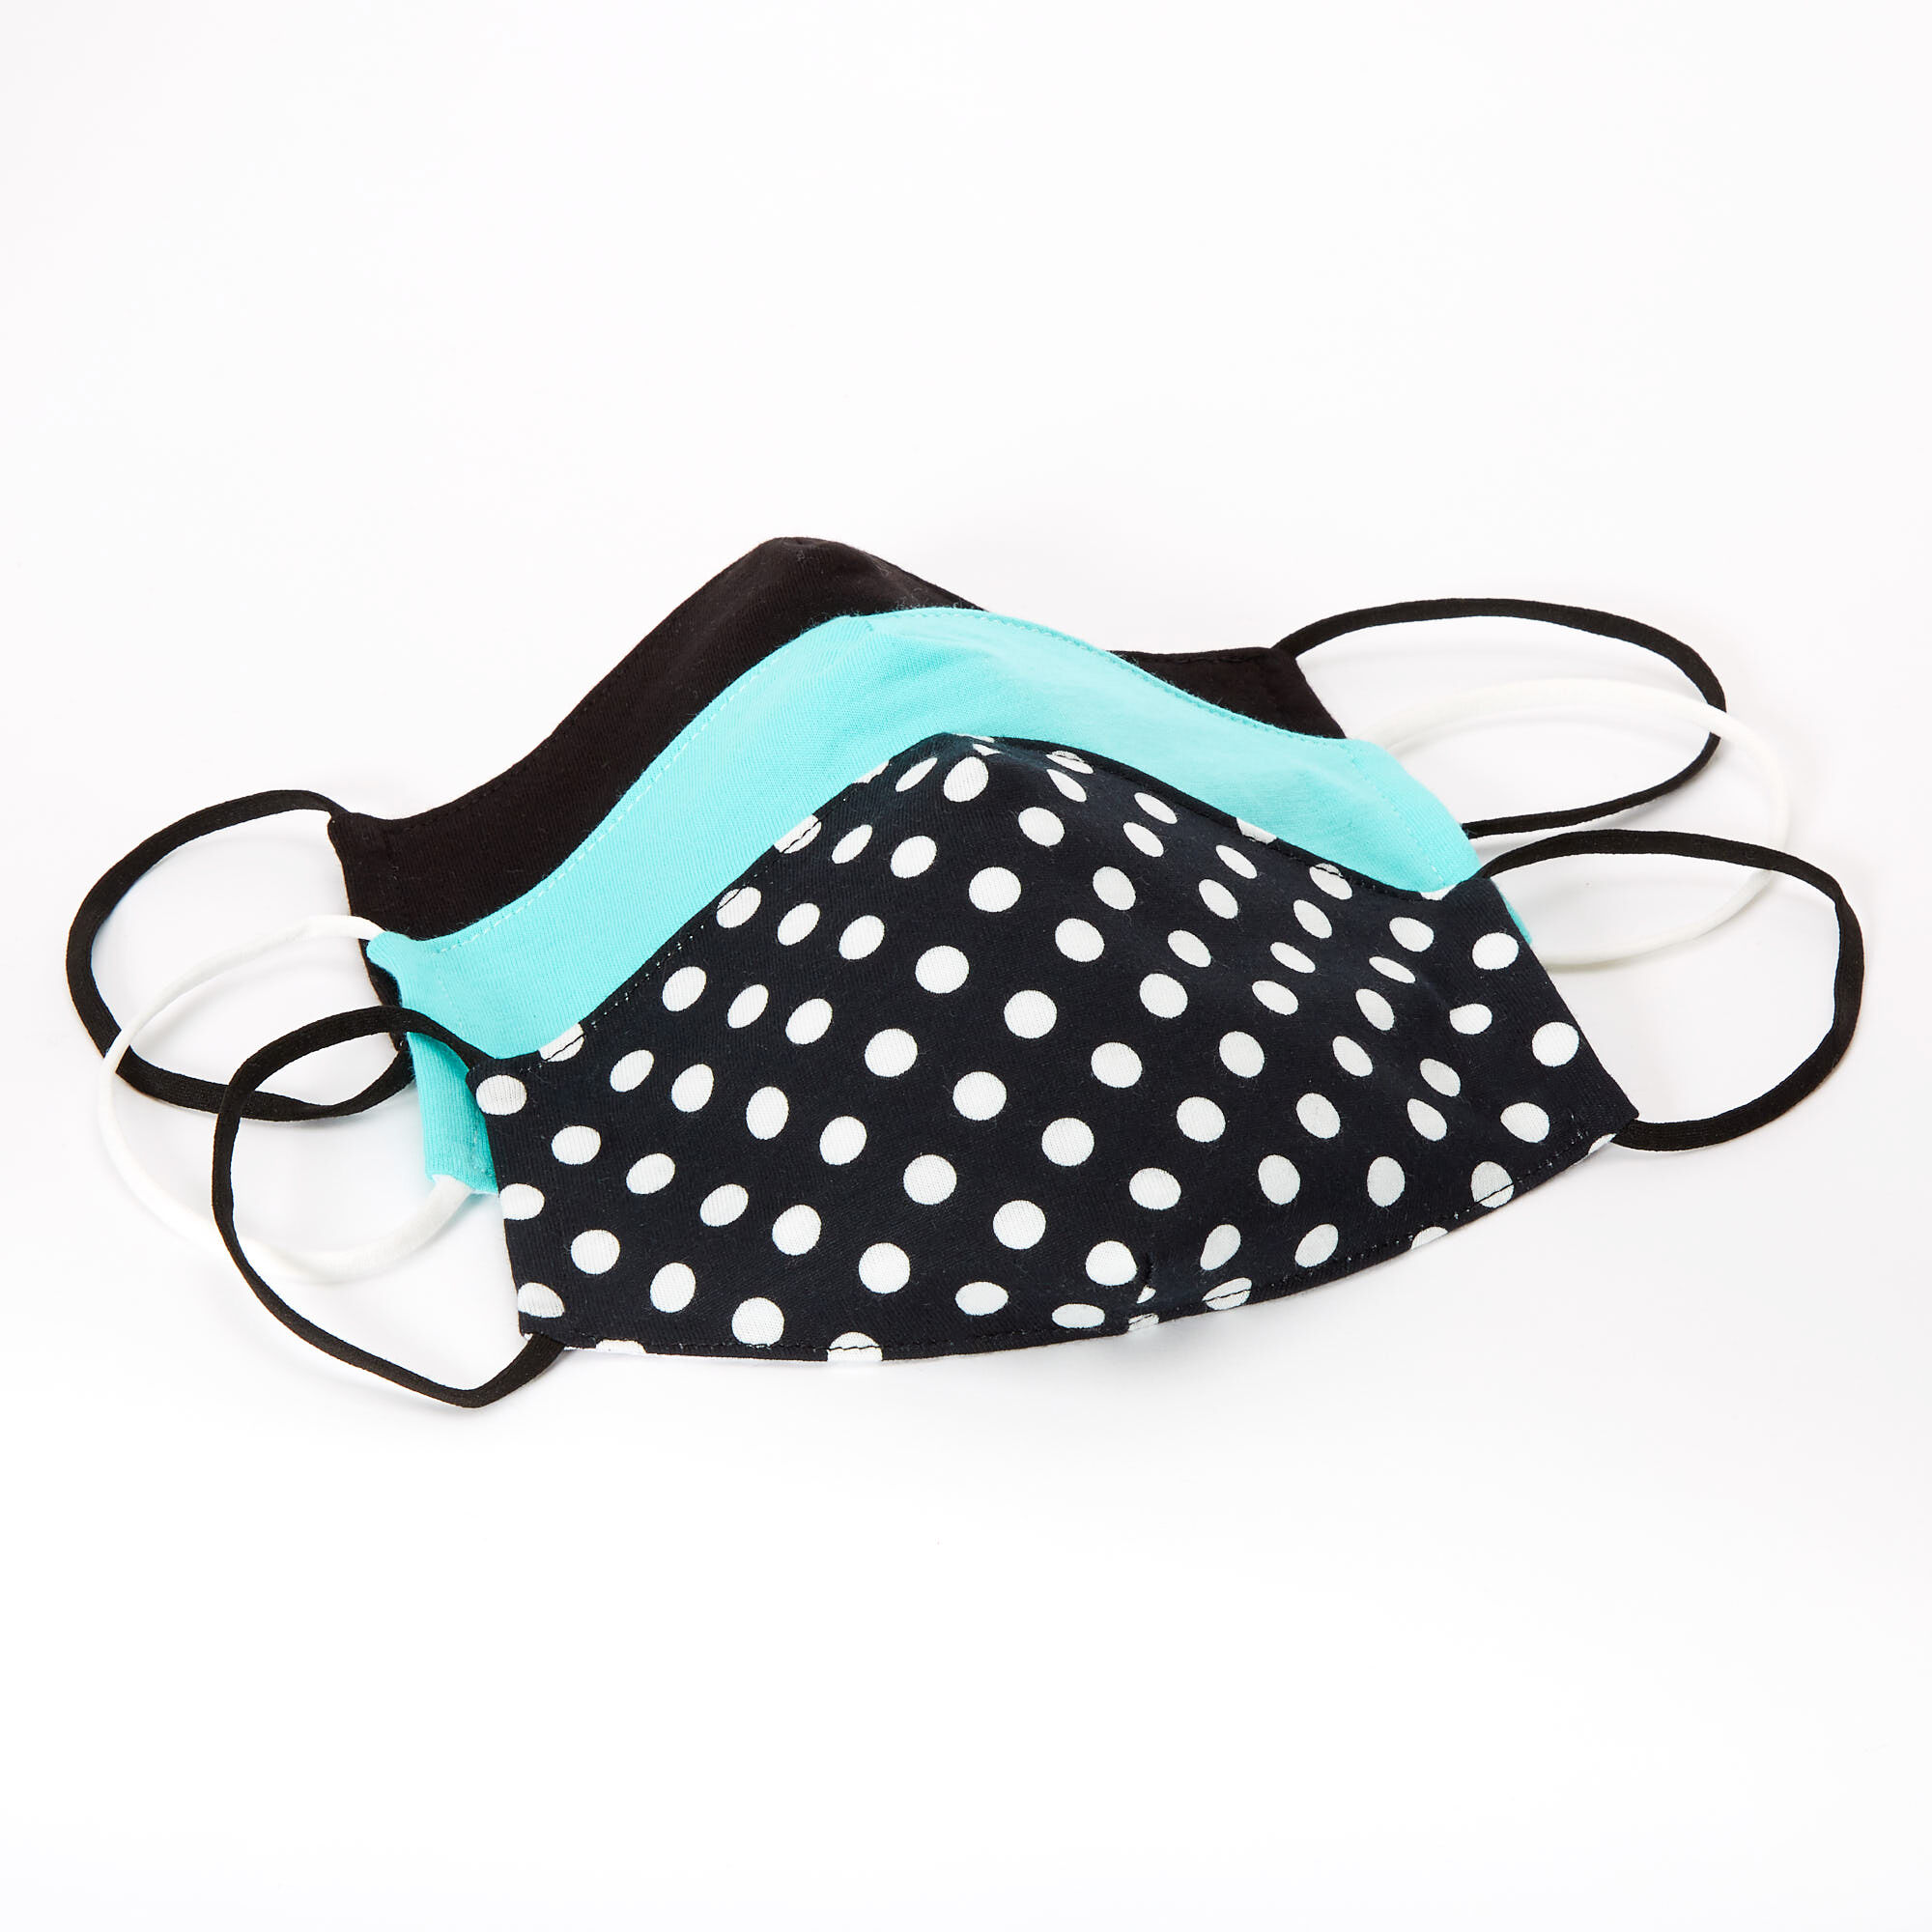 12pce Colour Polka Dot Mask 16cm for Birthday Parties